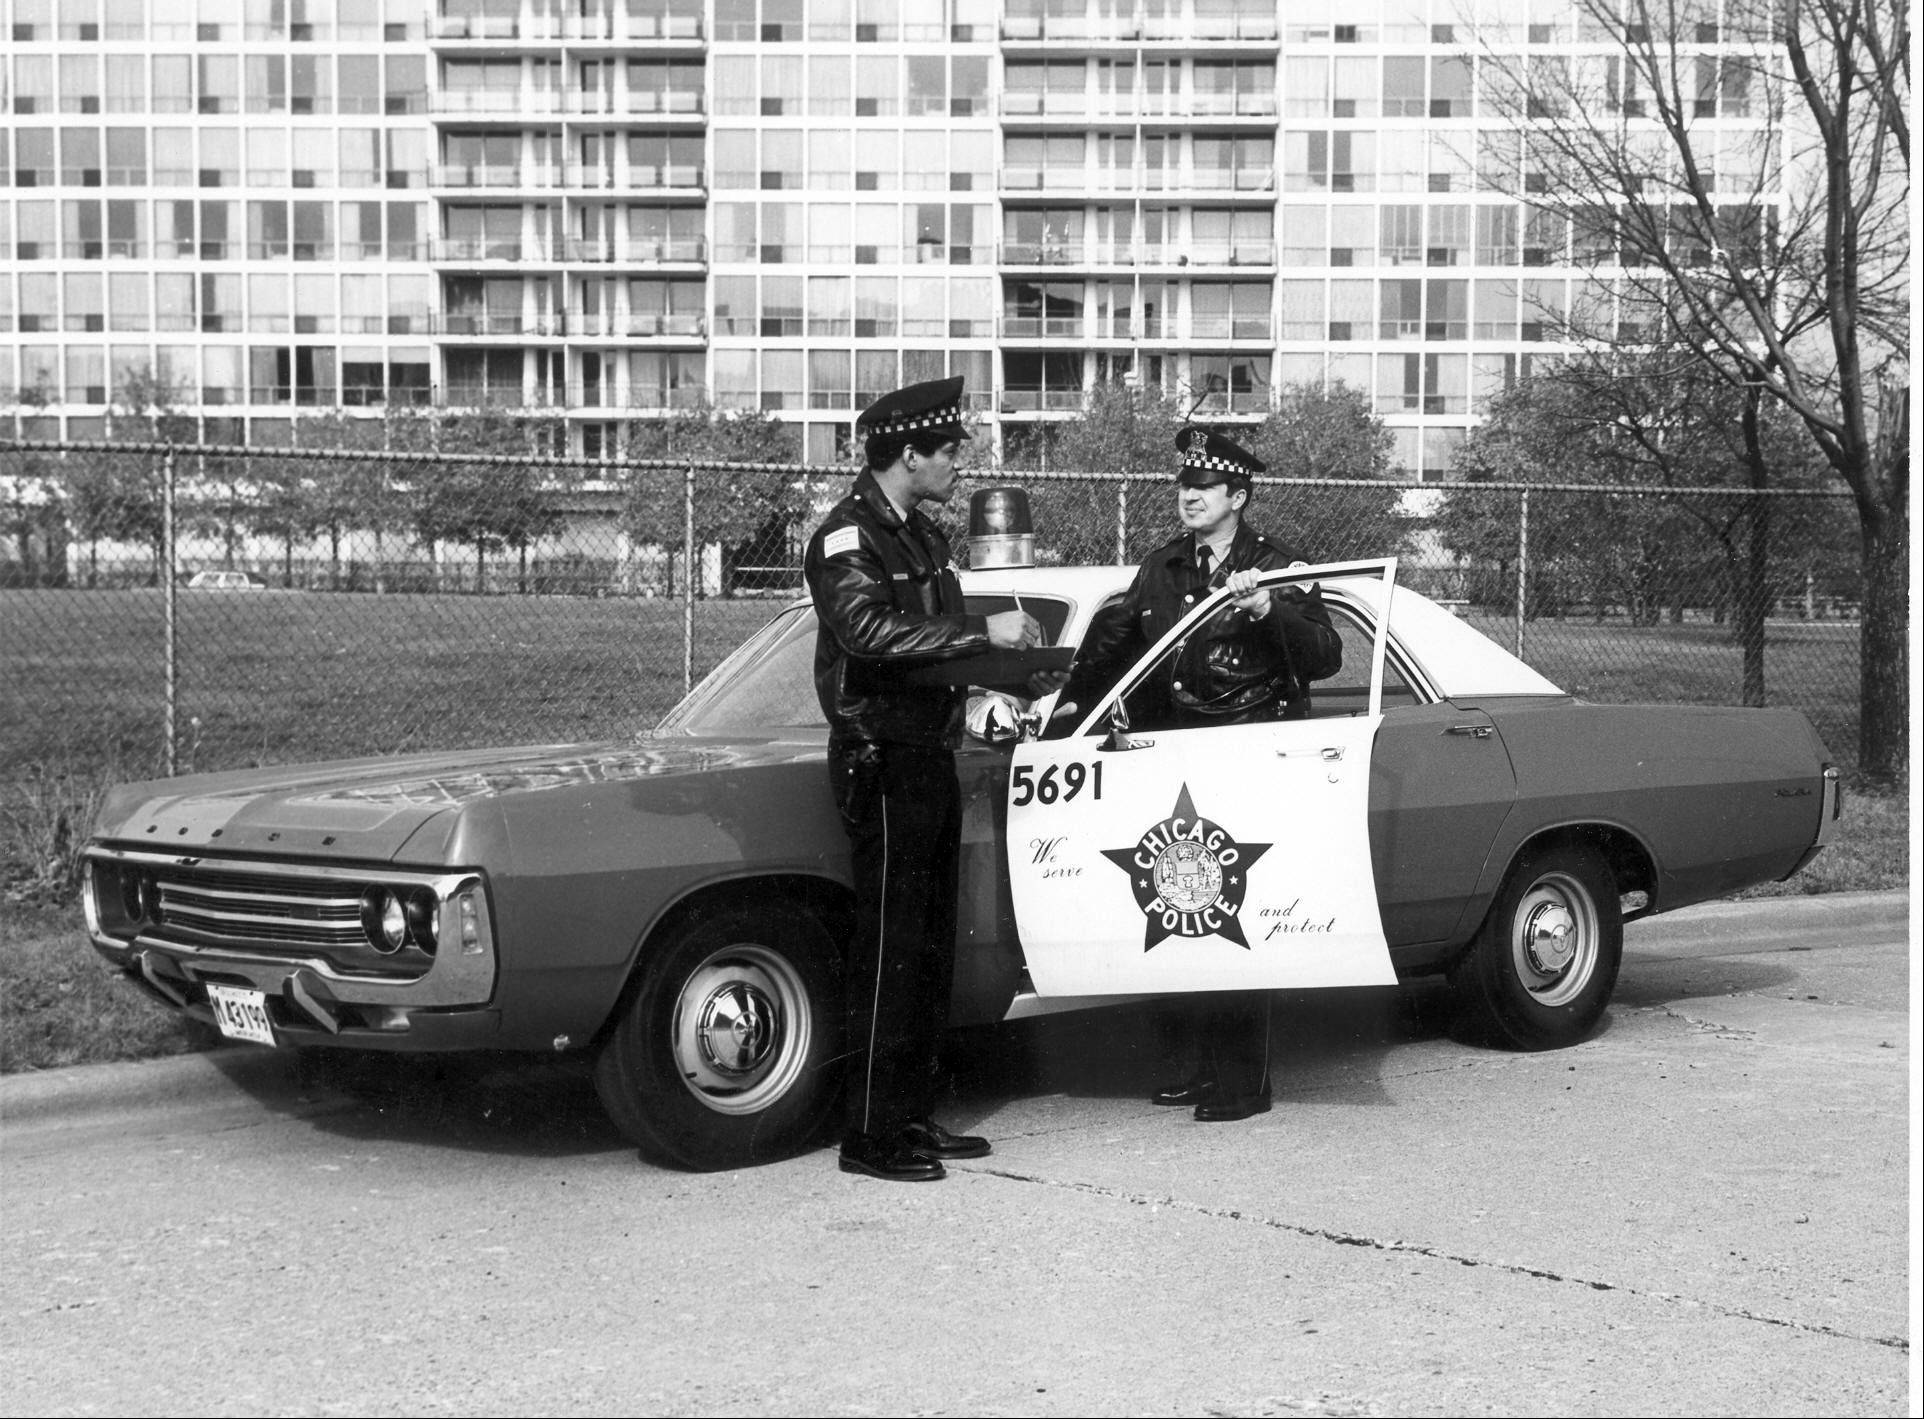 Reynolds used old photographs, like this one showing a 1971 Dodge Polara, to re-create his Chicago Police Department squad.